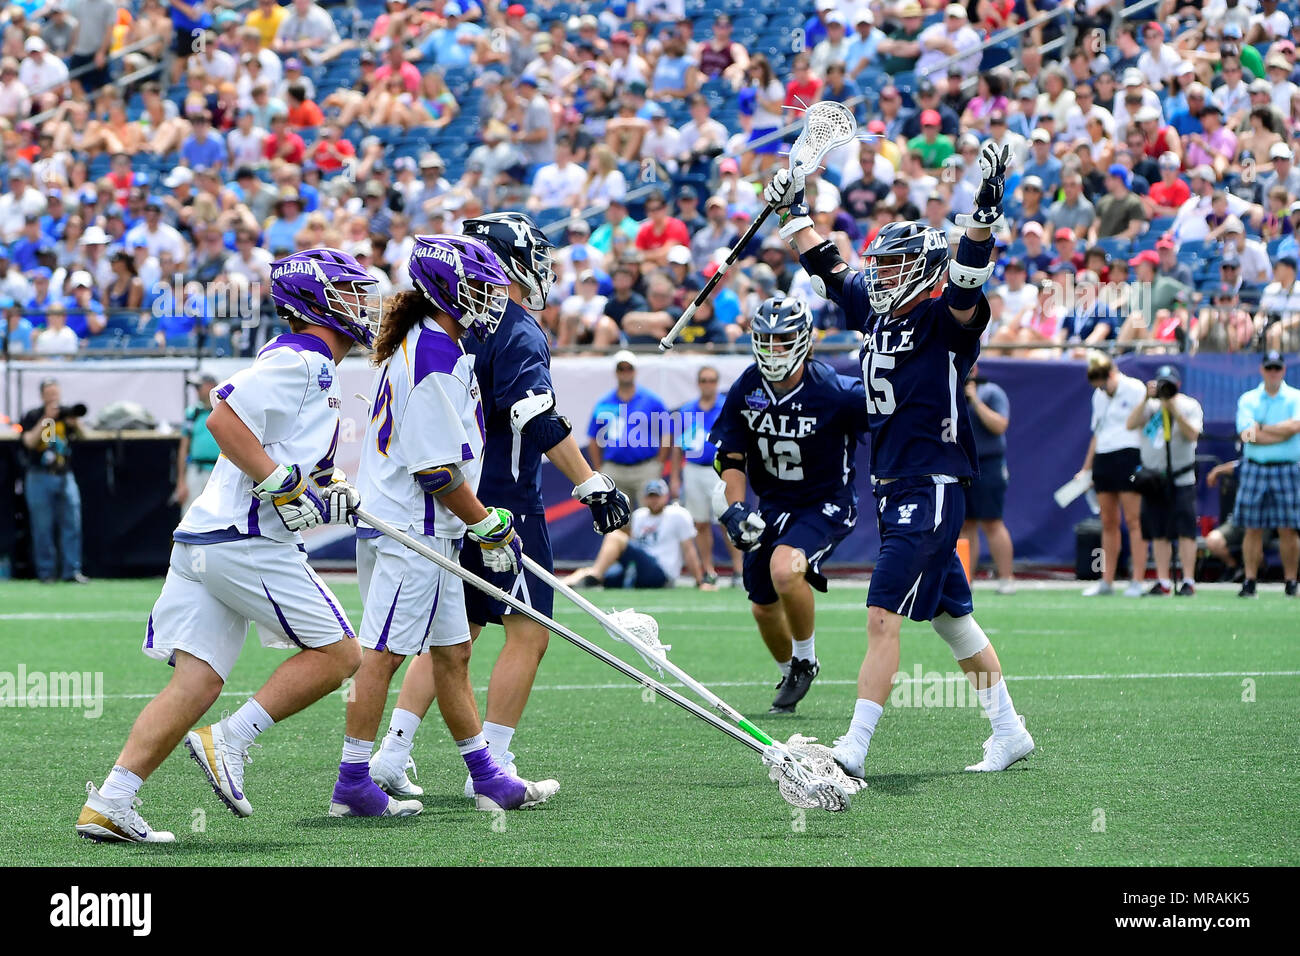 Foxborough, Mass. 26th May, 2018. Yale Bulldogs attackman Brian Ward (15) celebrates a goal during the NCAA Division I Lacrosse semi final between Yale and Albany, held at Gillette Stadium, in Foxborough, Mass. Yale defeats Albany 20-11. Eric Canha/CSM/Alamy Live News Stock Photo